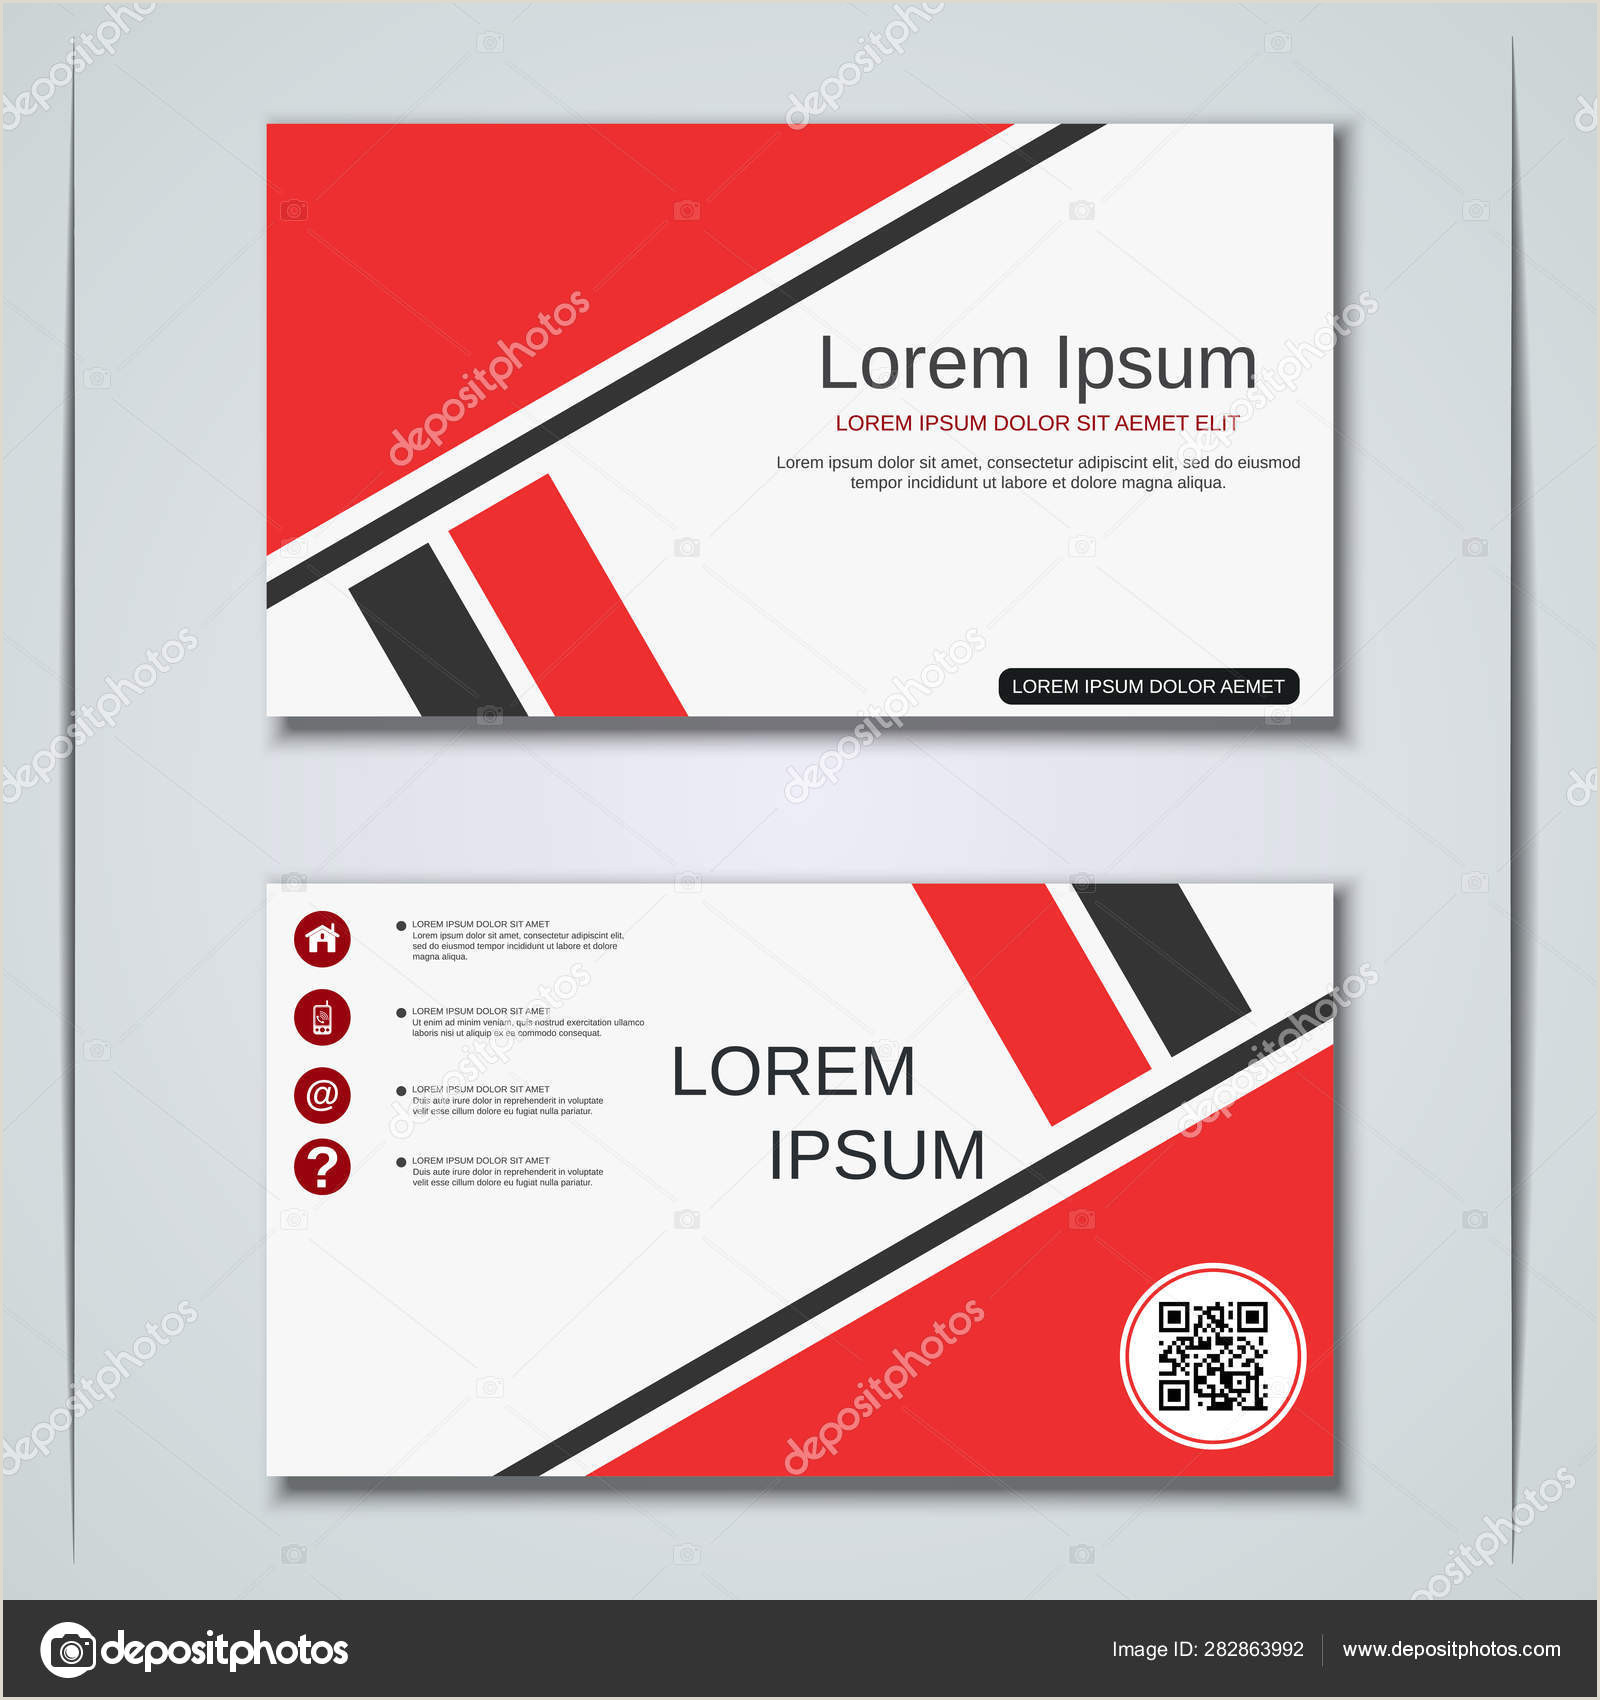 Unique Business Cards' Business Visiting Card Vector Design Template